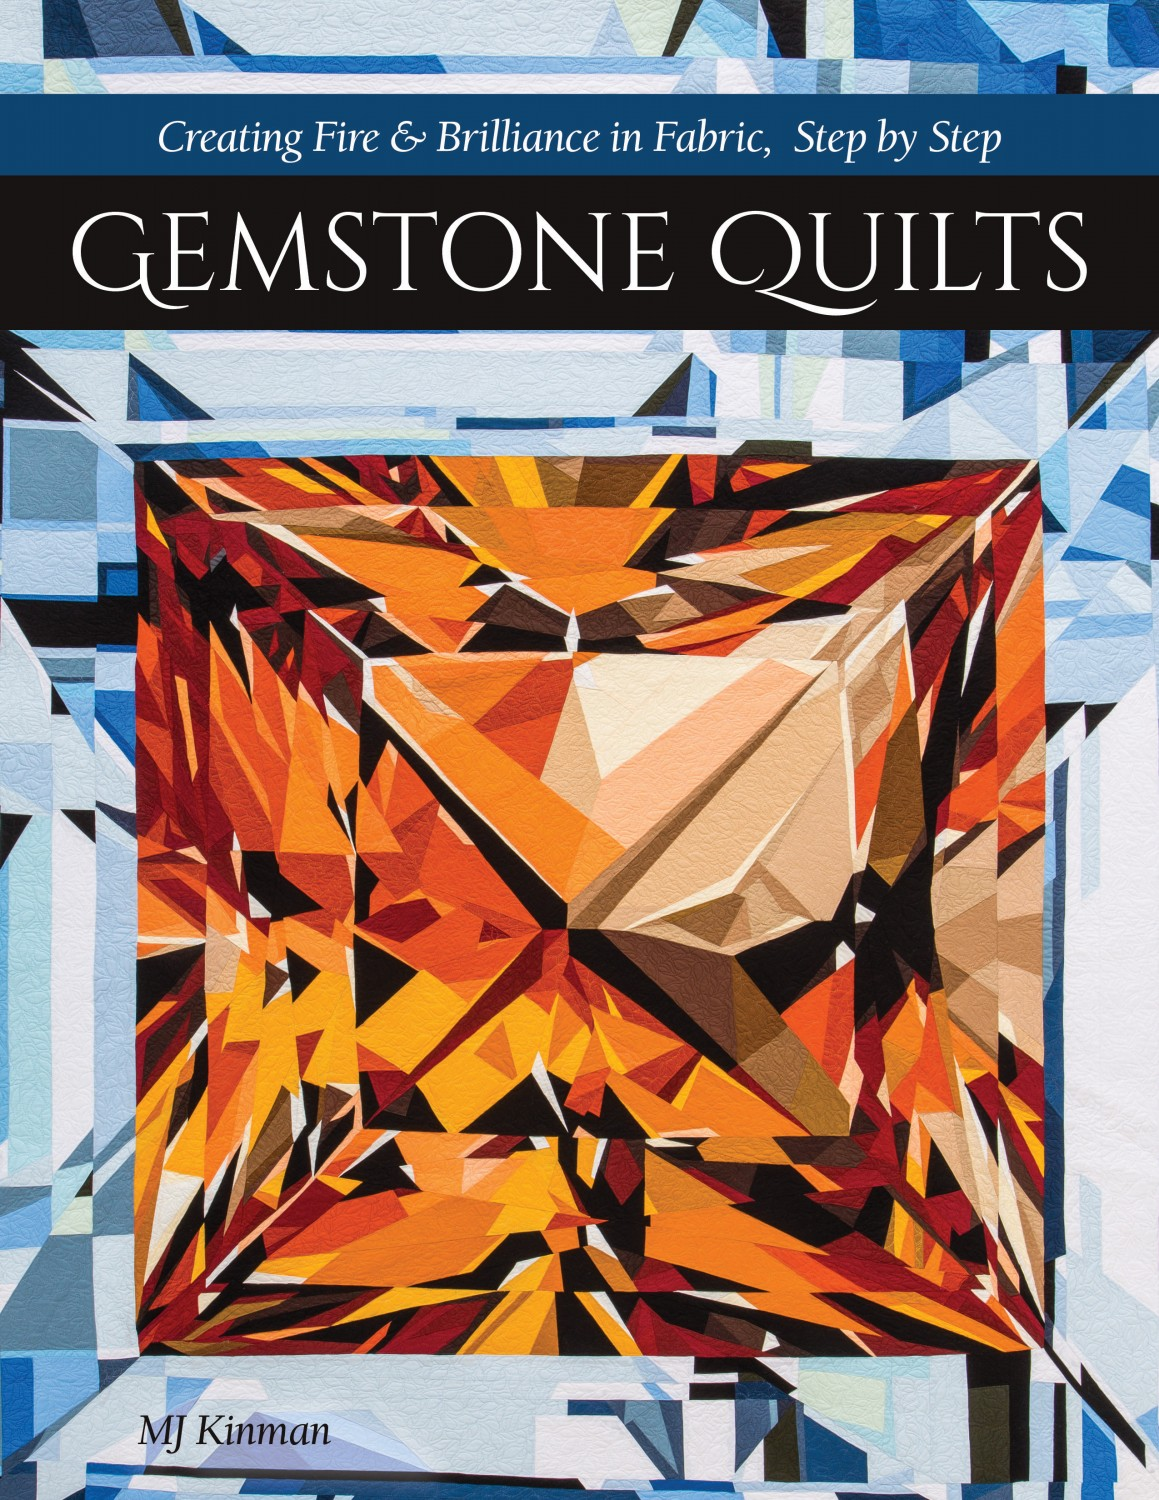 Gemstone Quilts ~RELEASE DATE: Oct 25, 2020~